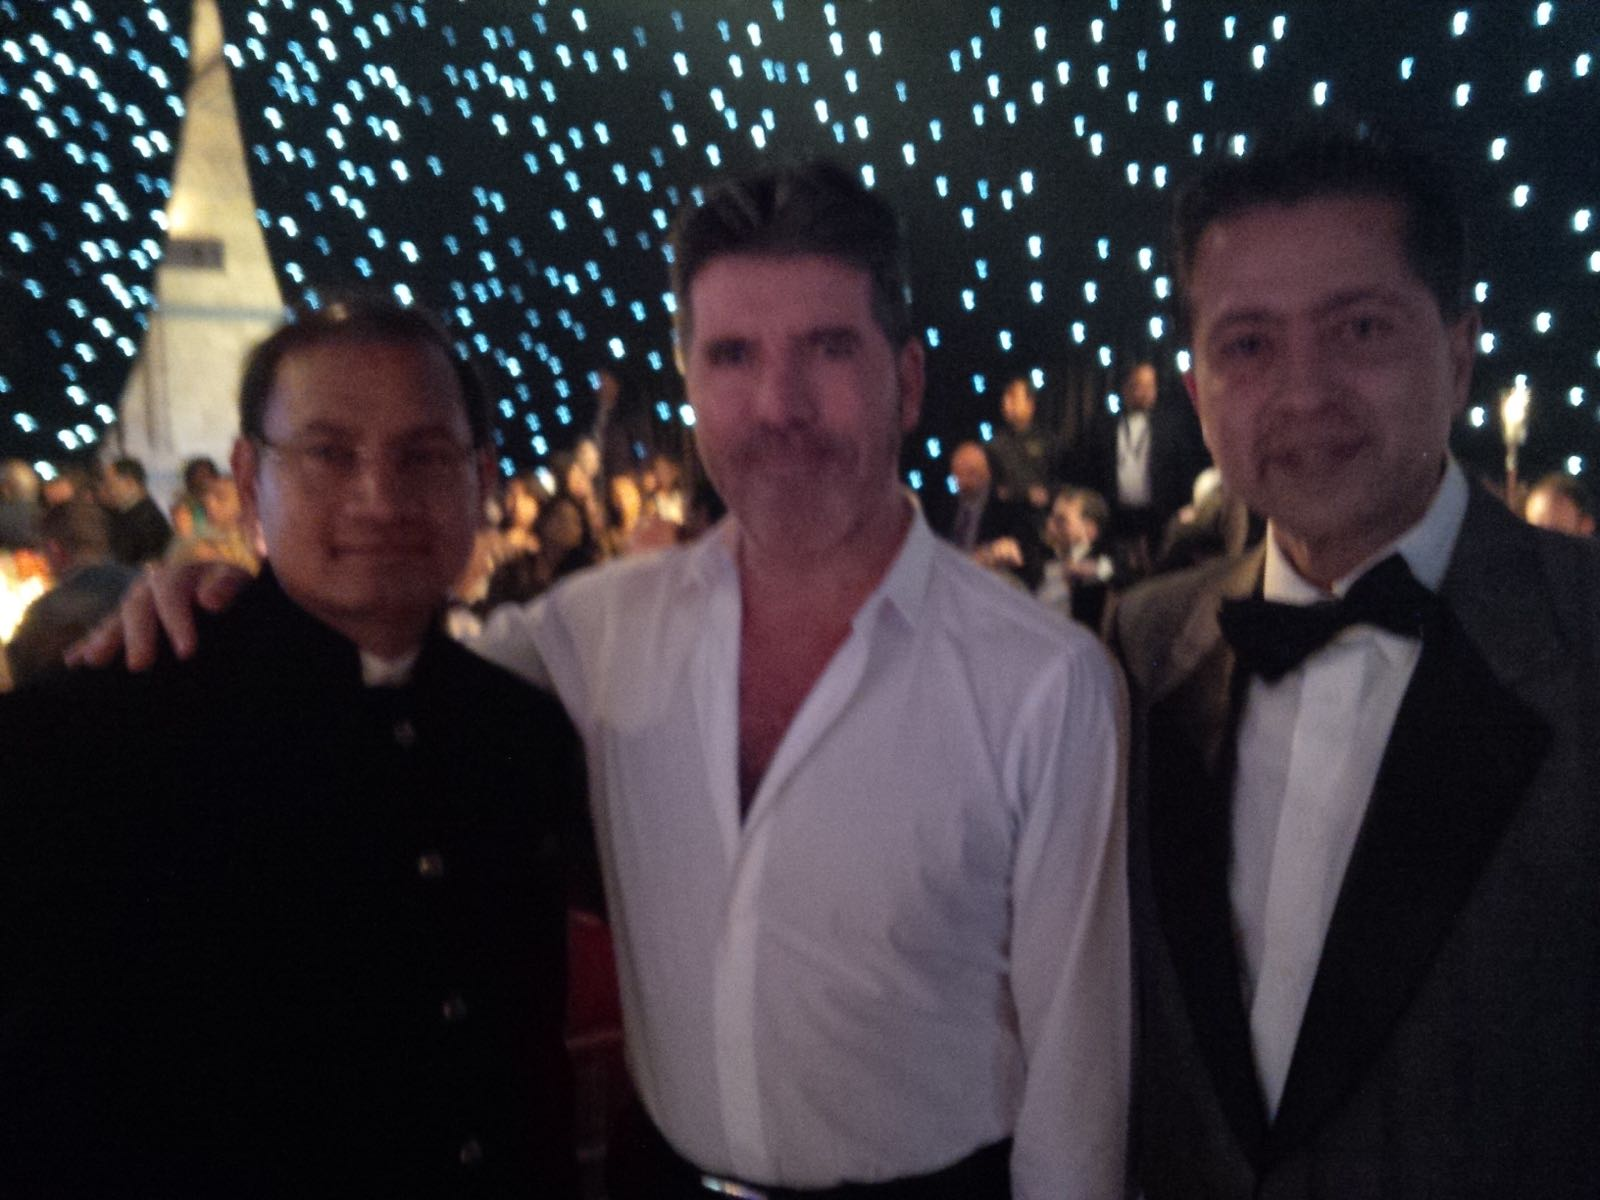 With Simon Cowell